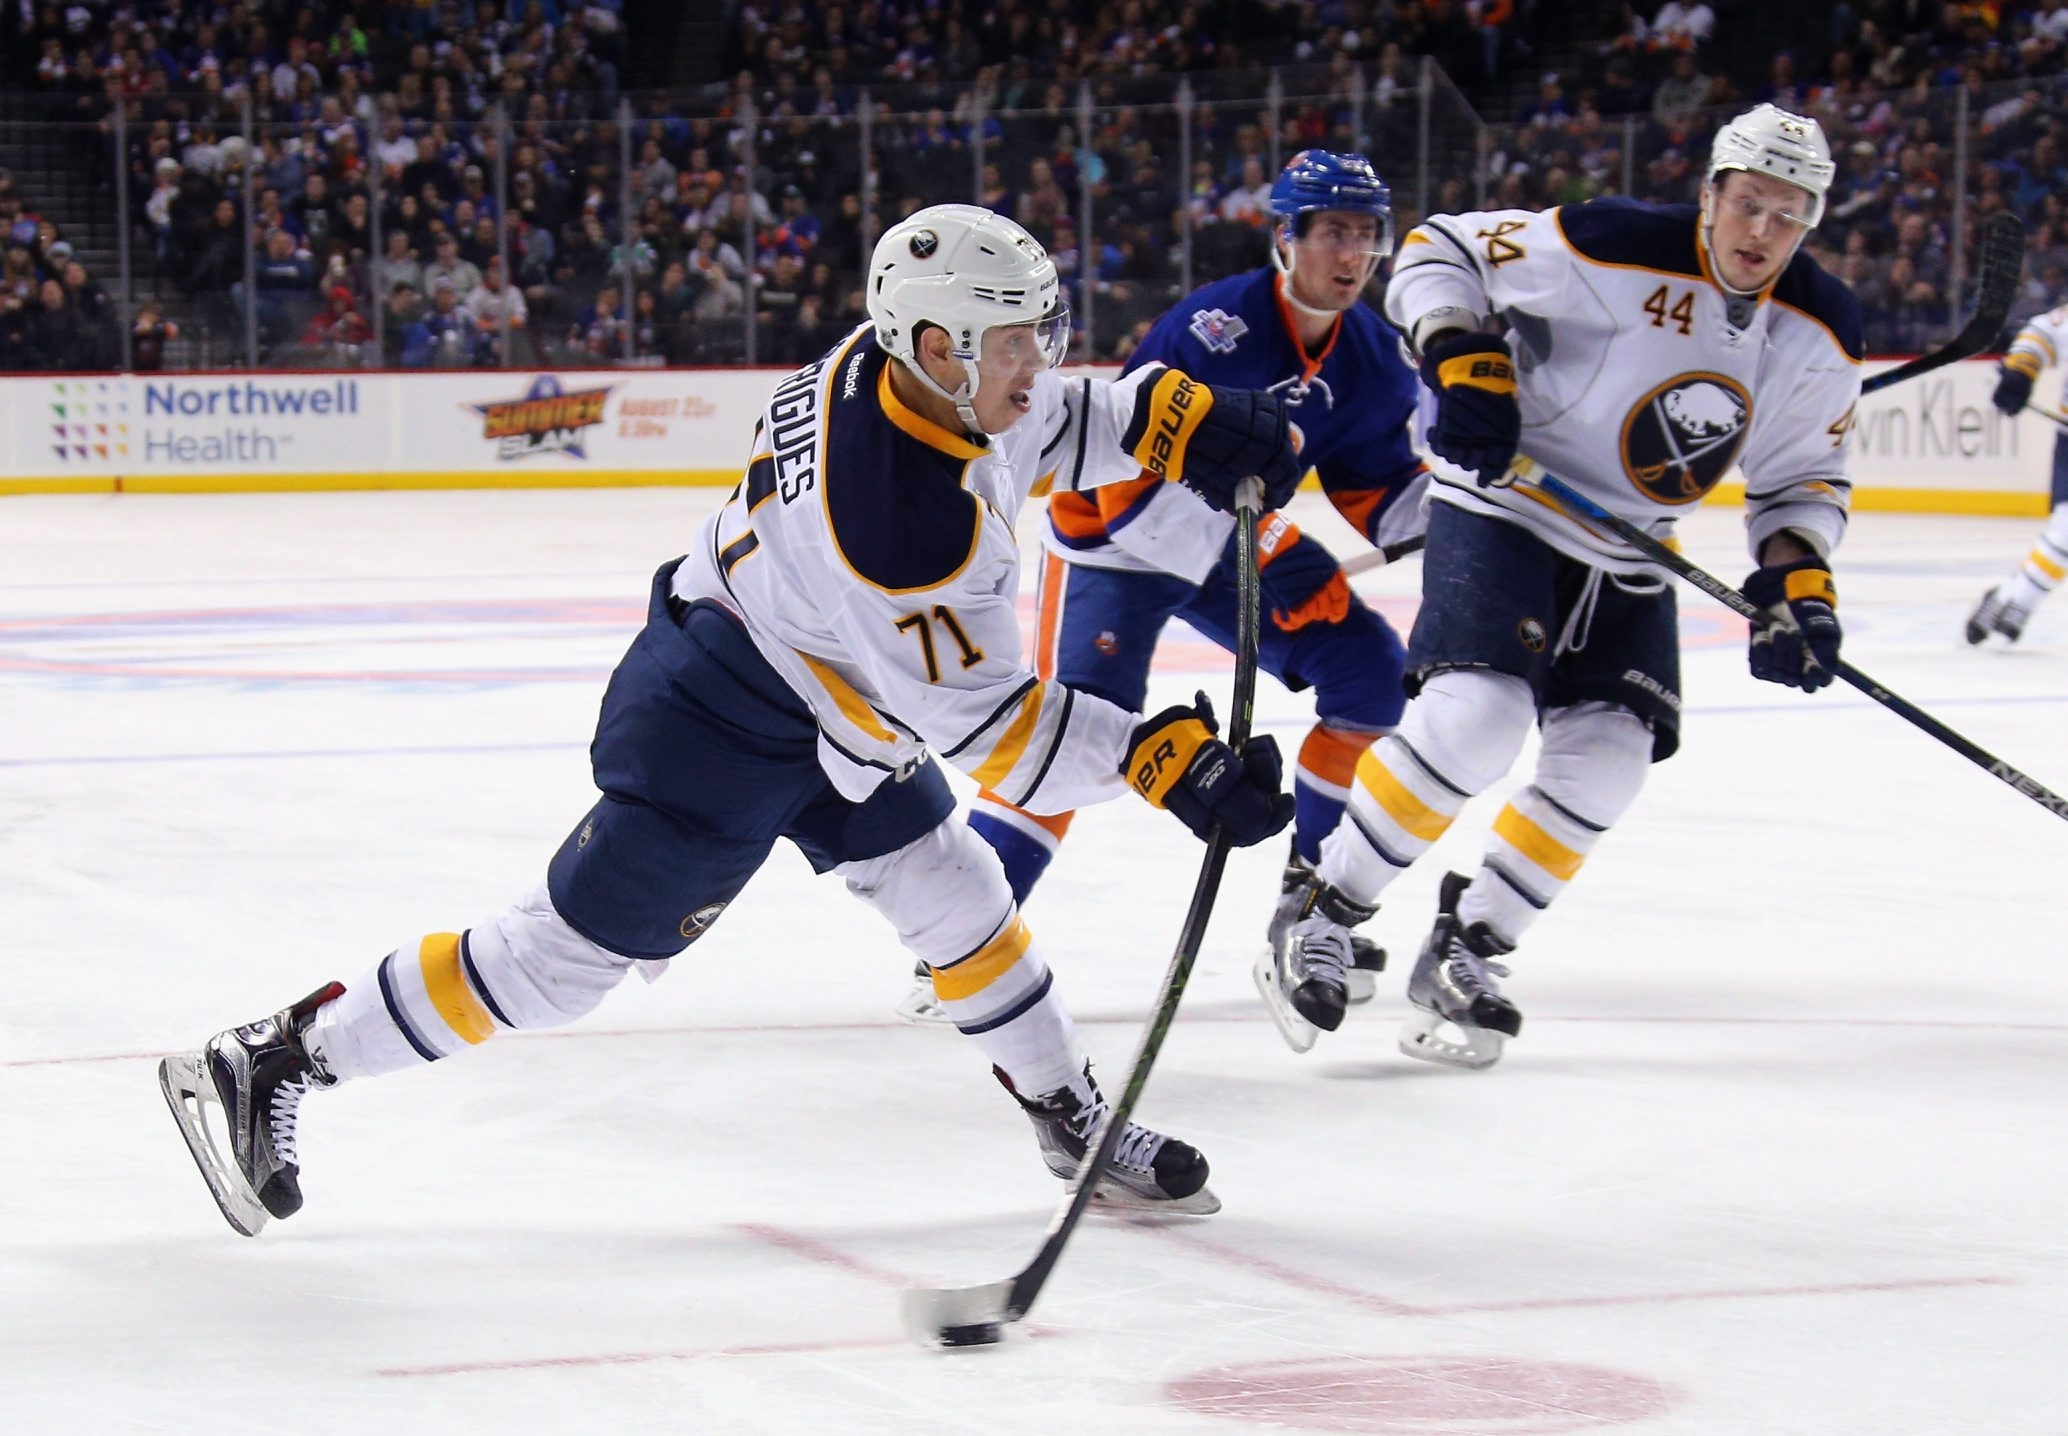 The Buffalo Sabres' Evan Rodrigues scores his first NHL goal during the second period against the New York Islanders at Barclays Center.